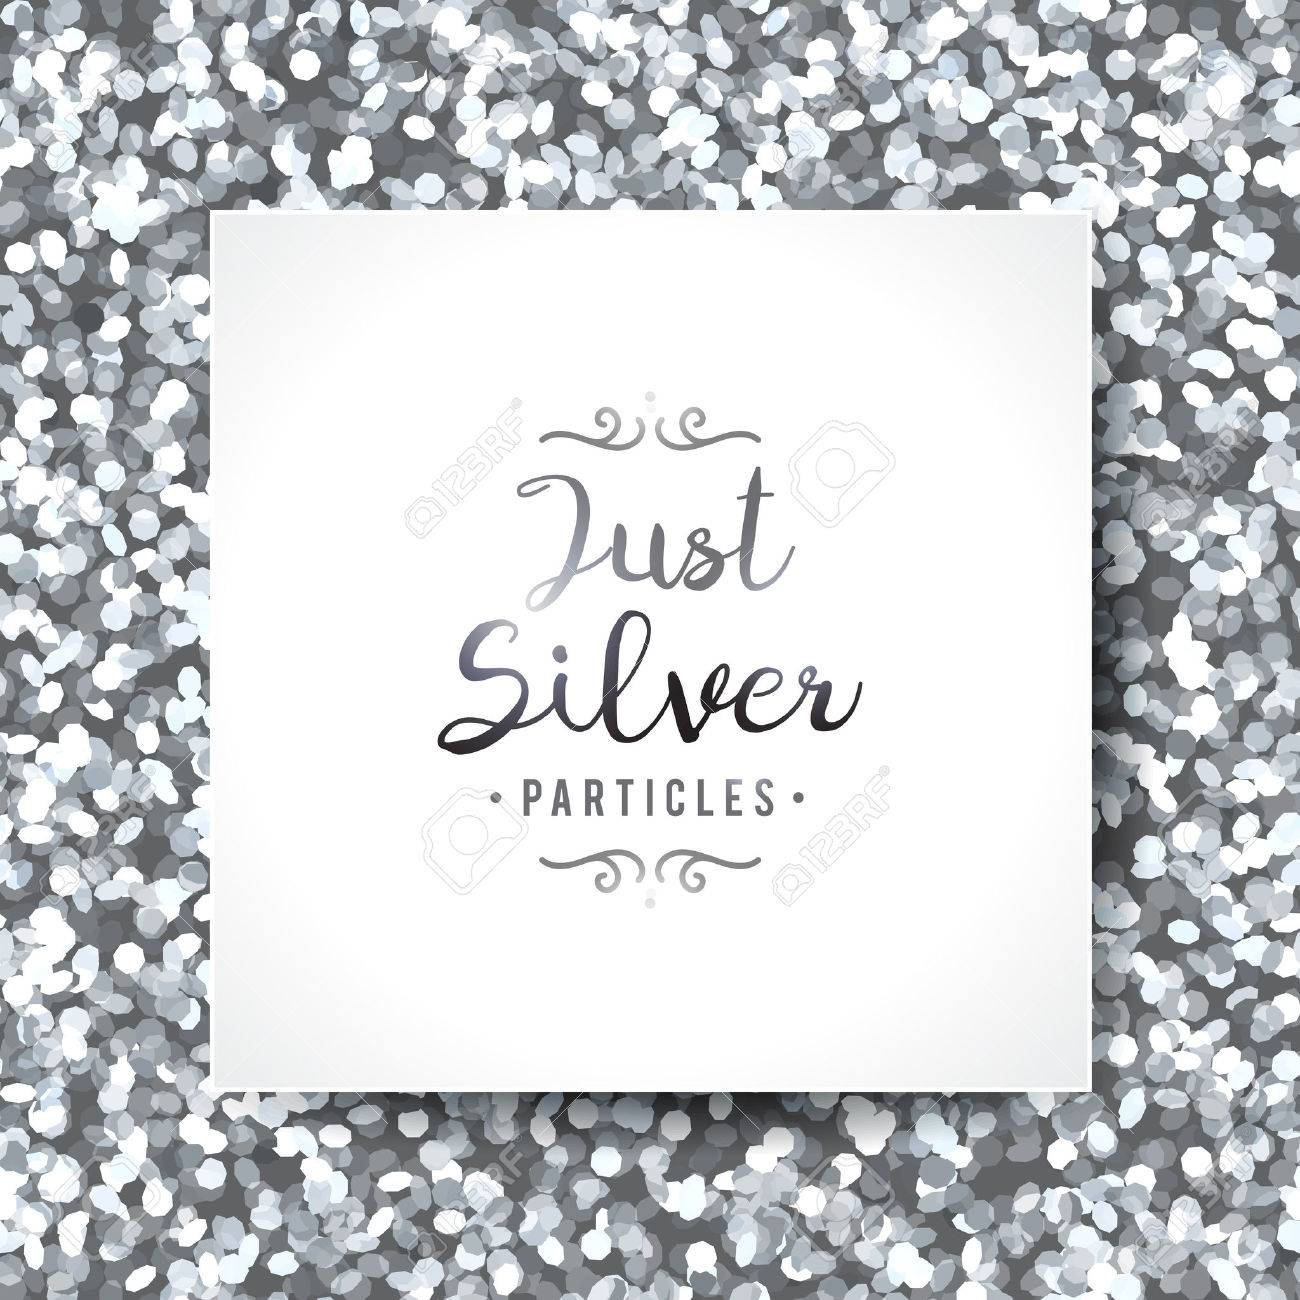 vector sparkles seamless pattern, texture of silver particles and white frame - 55003927